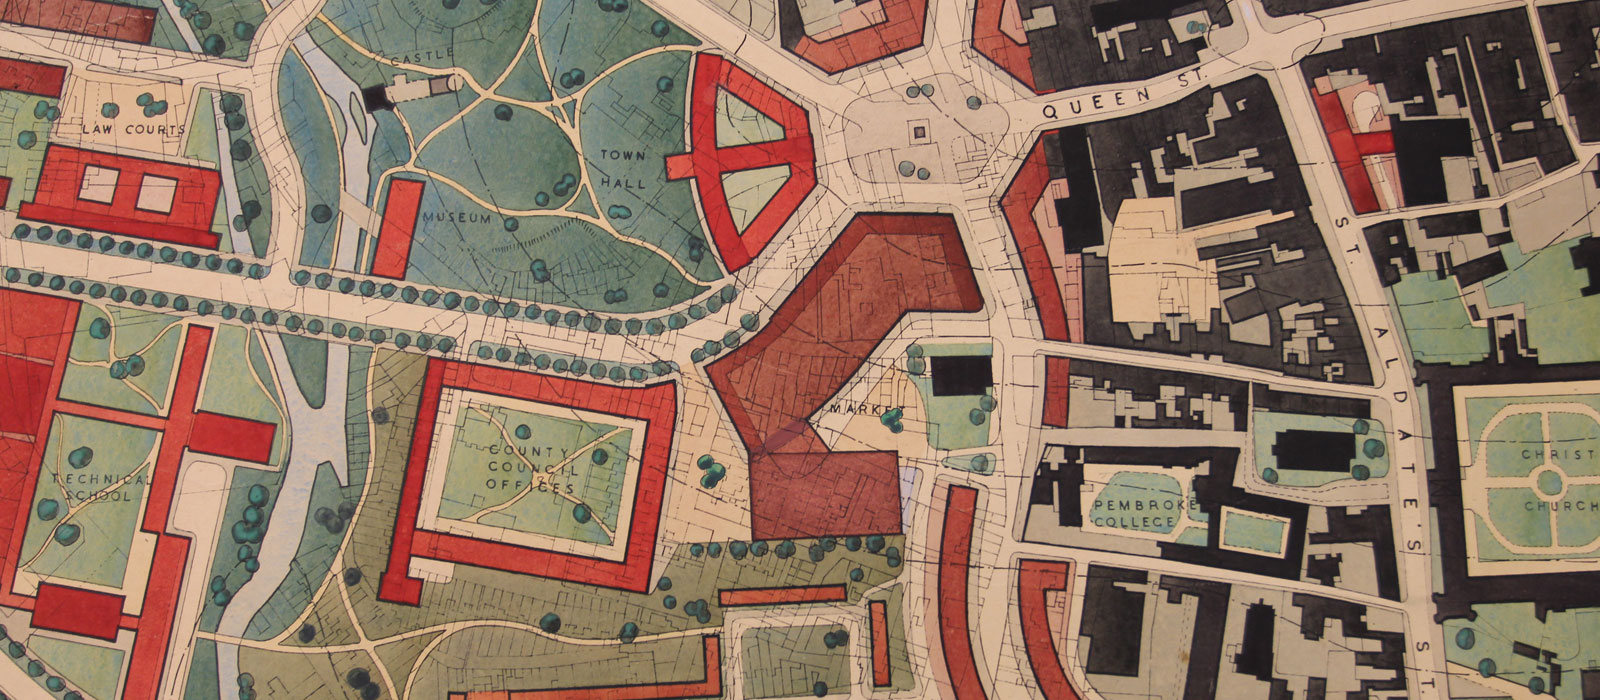 The Thomas Sharp map of Oxford. Photo courtesy of the Bodleian Libraries